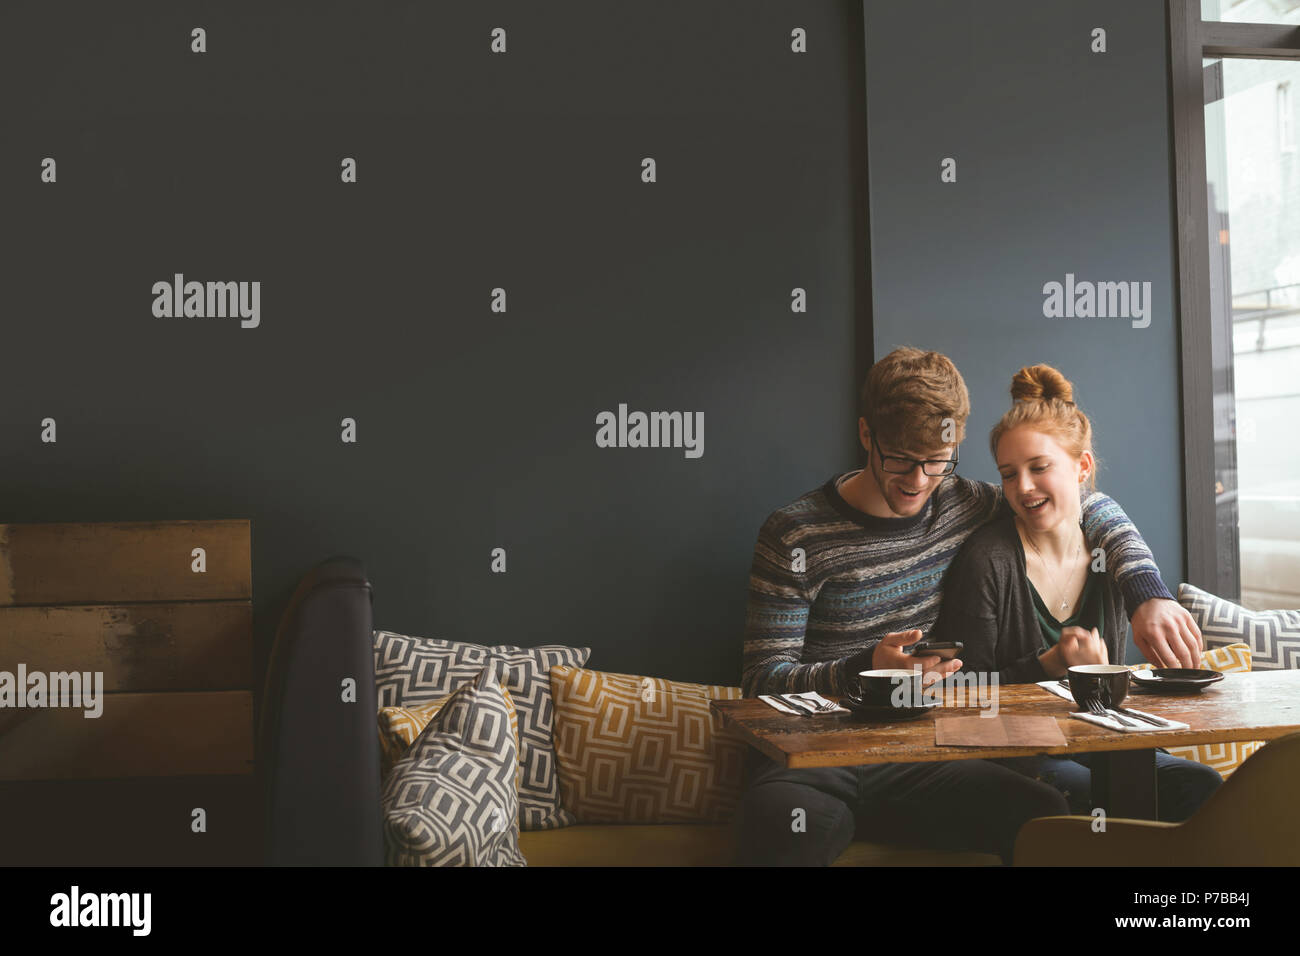 Couple talking to each other in cafe - Stock Image